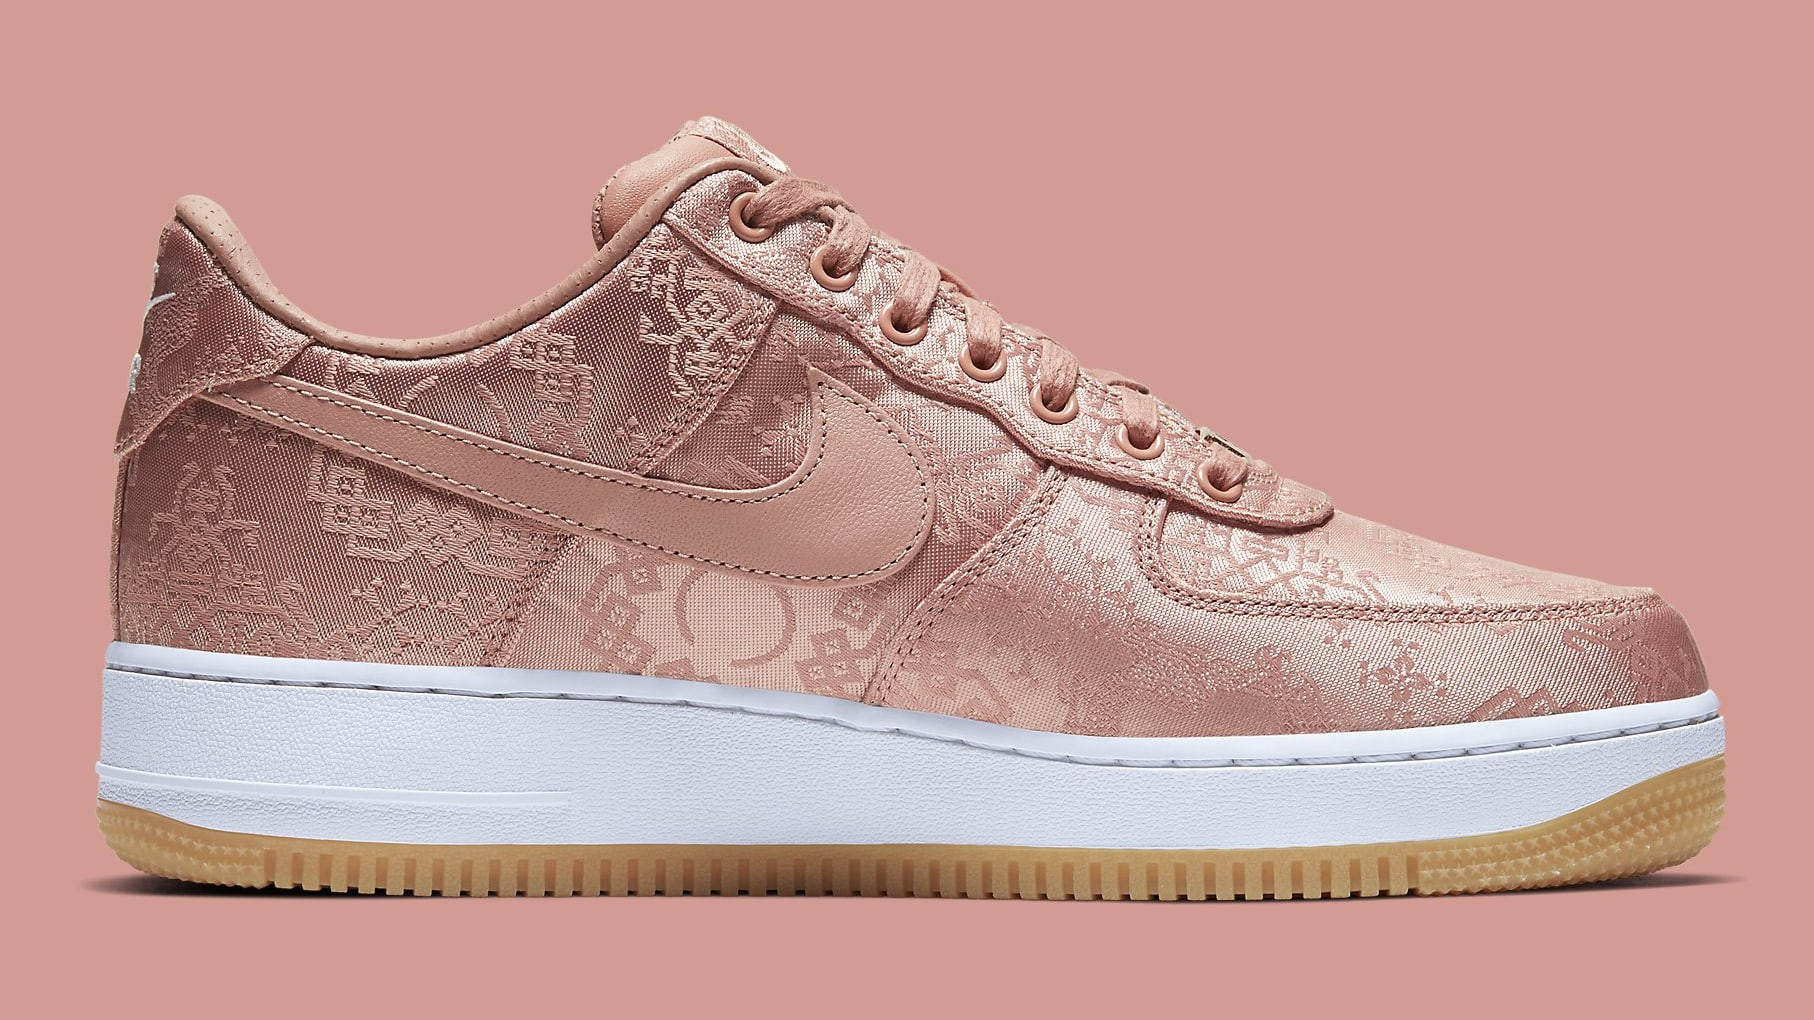 clot x nike air force 1 rose gold raffle